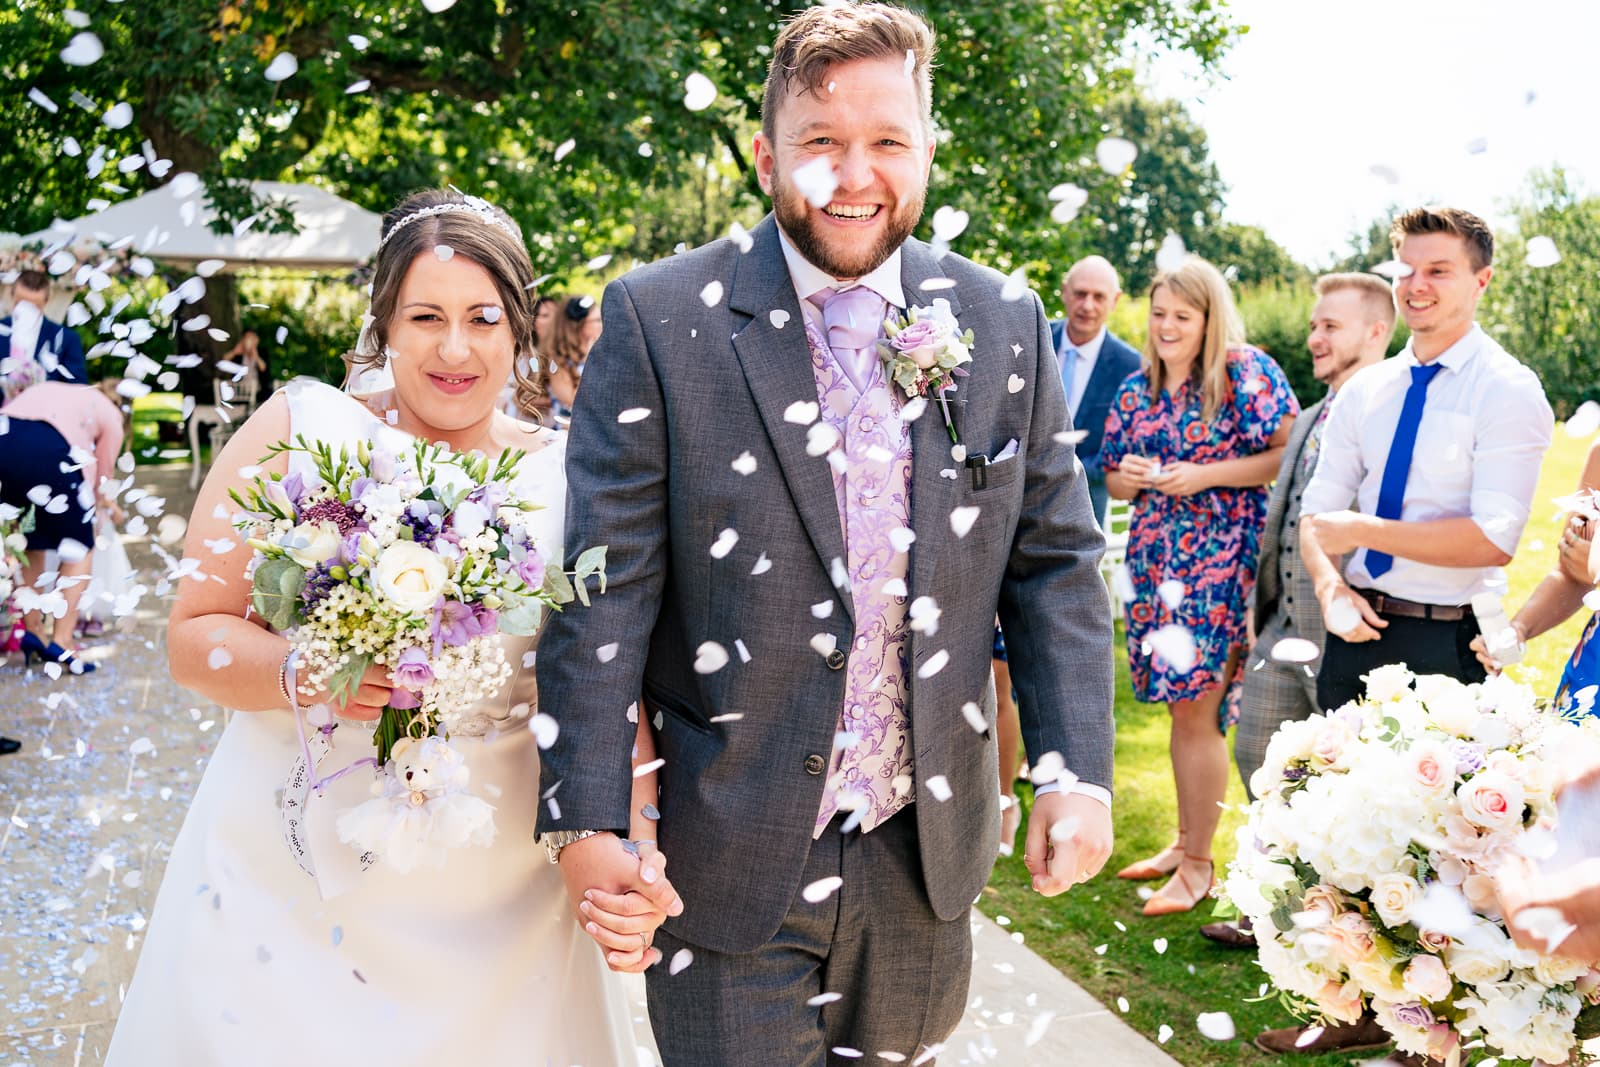 Leicester Wedding Photography at Winstanley House - Winstanley House Wedding Photography - Bride and groom get covered in confetti after their outdoor wedding ceremony